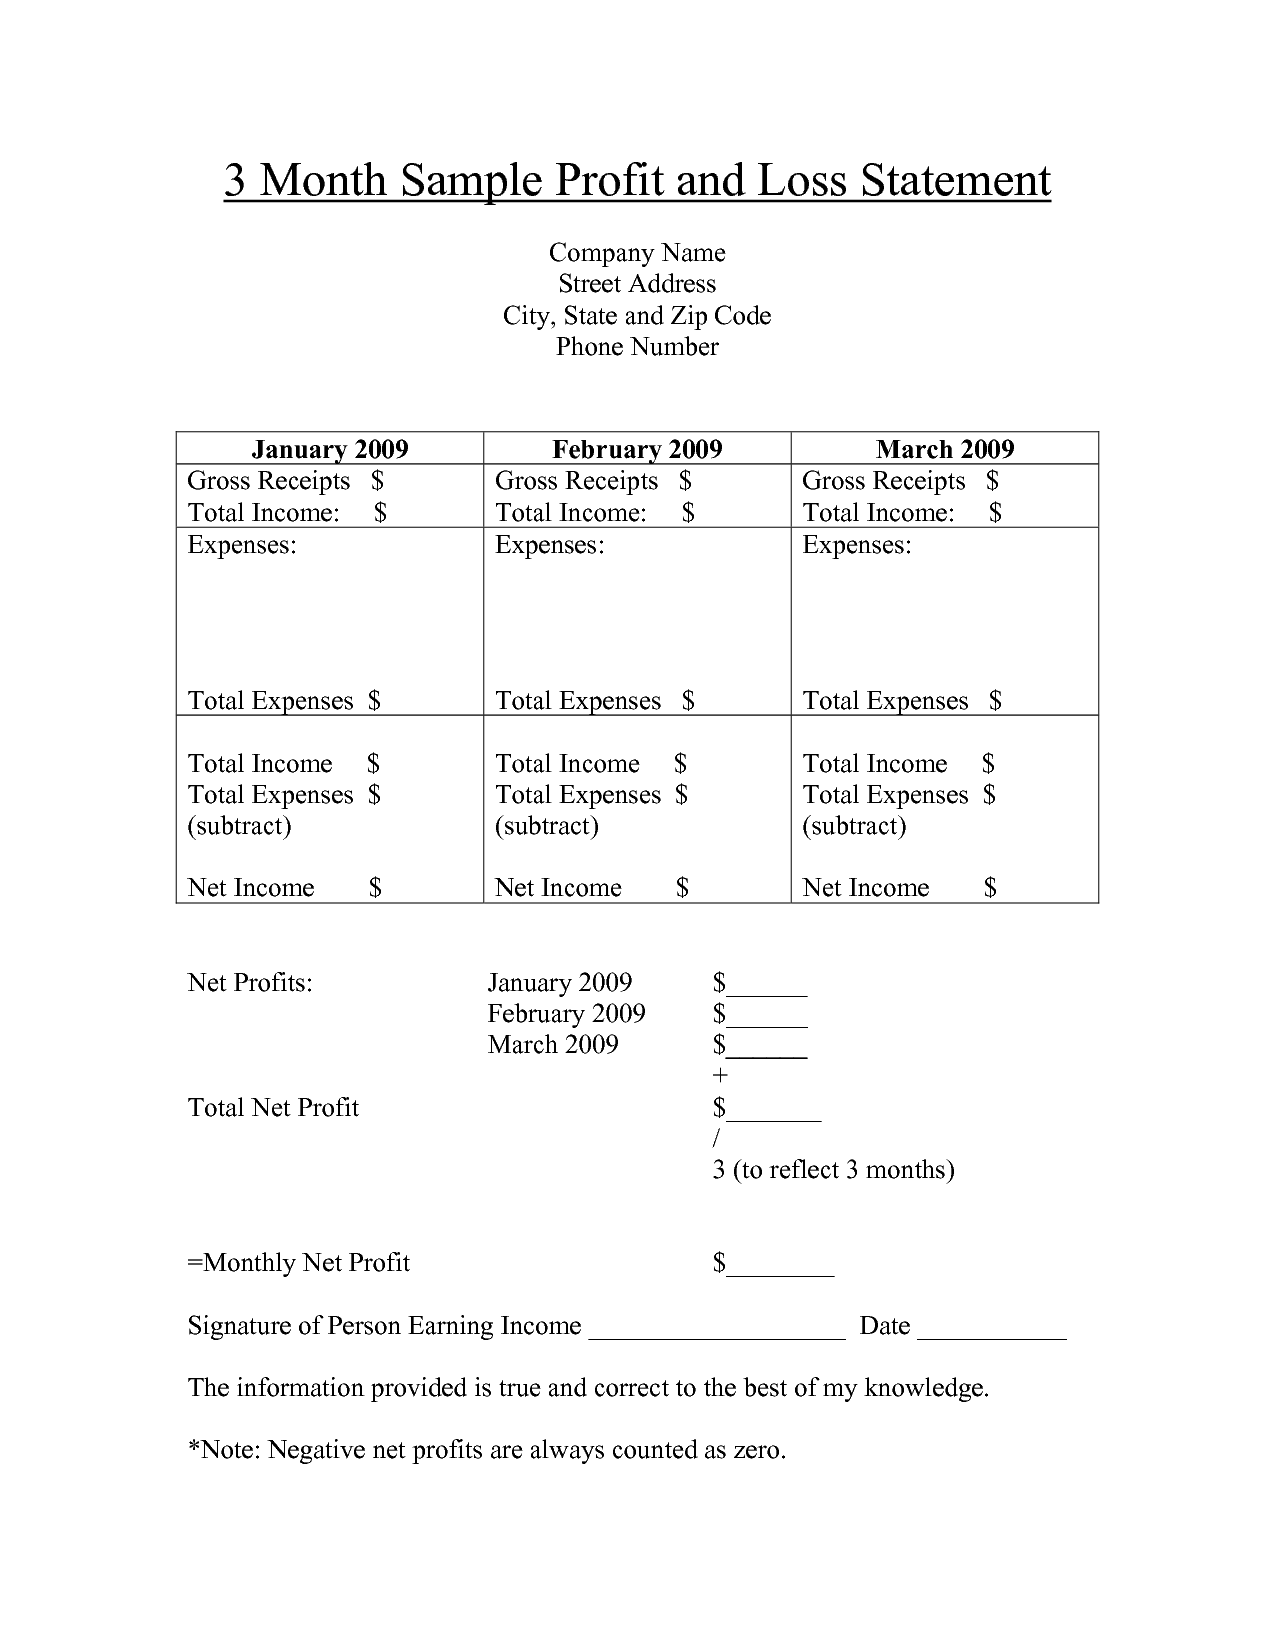 Profit And Loss Statement Form Free Profit And Loss Statement Form Printable  Month Sample Profit And .